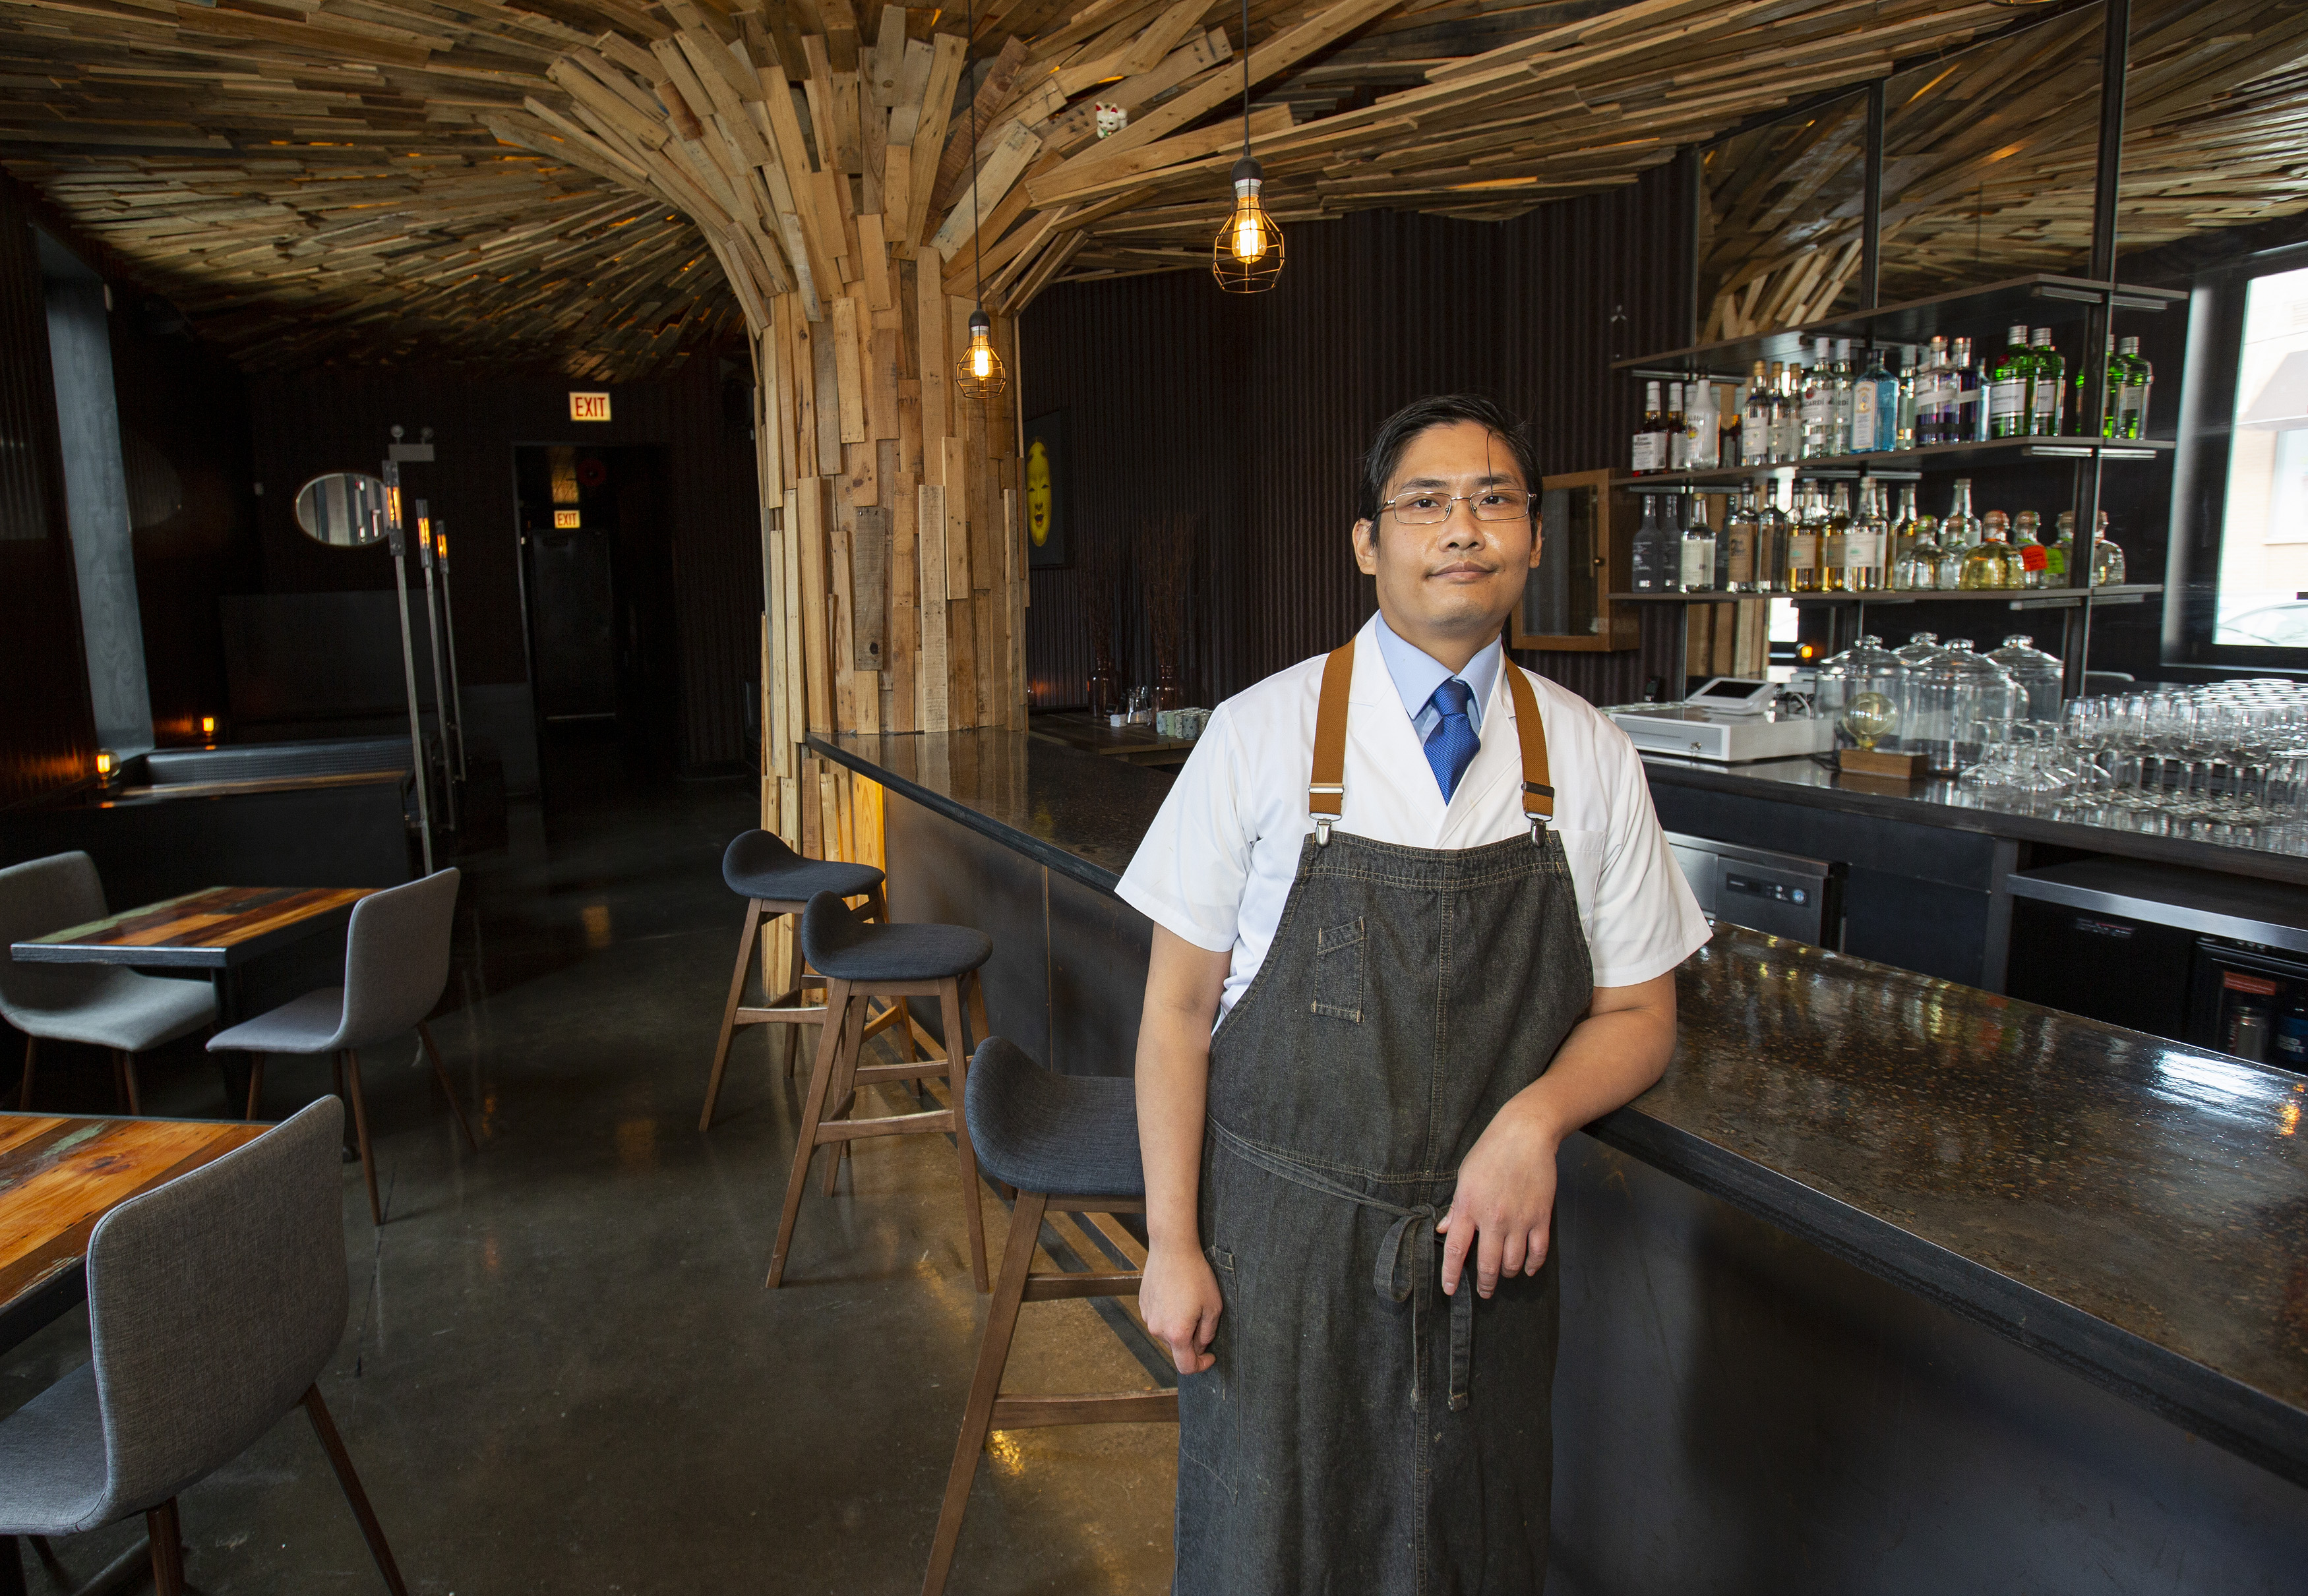 A chef wearing a dark apron leaning against a bar.